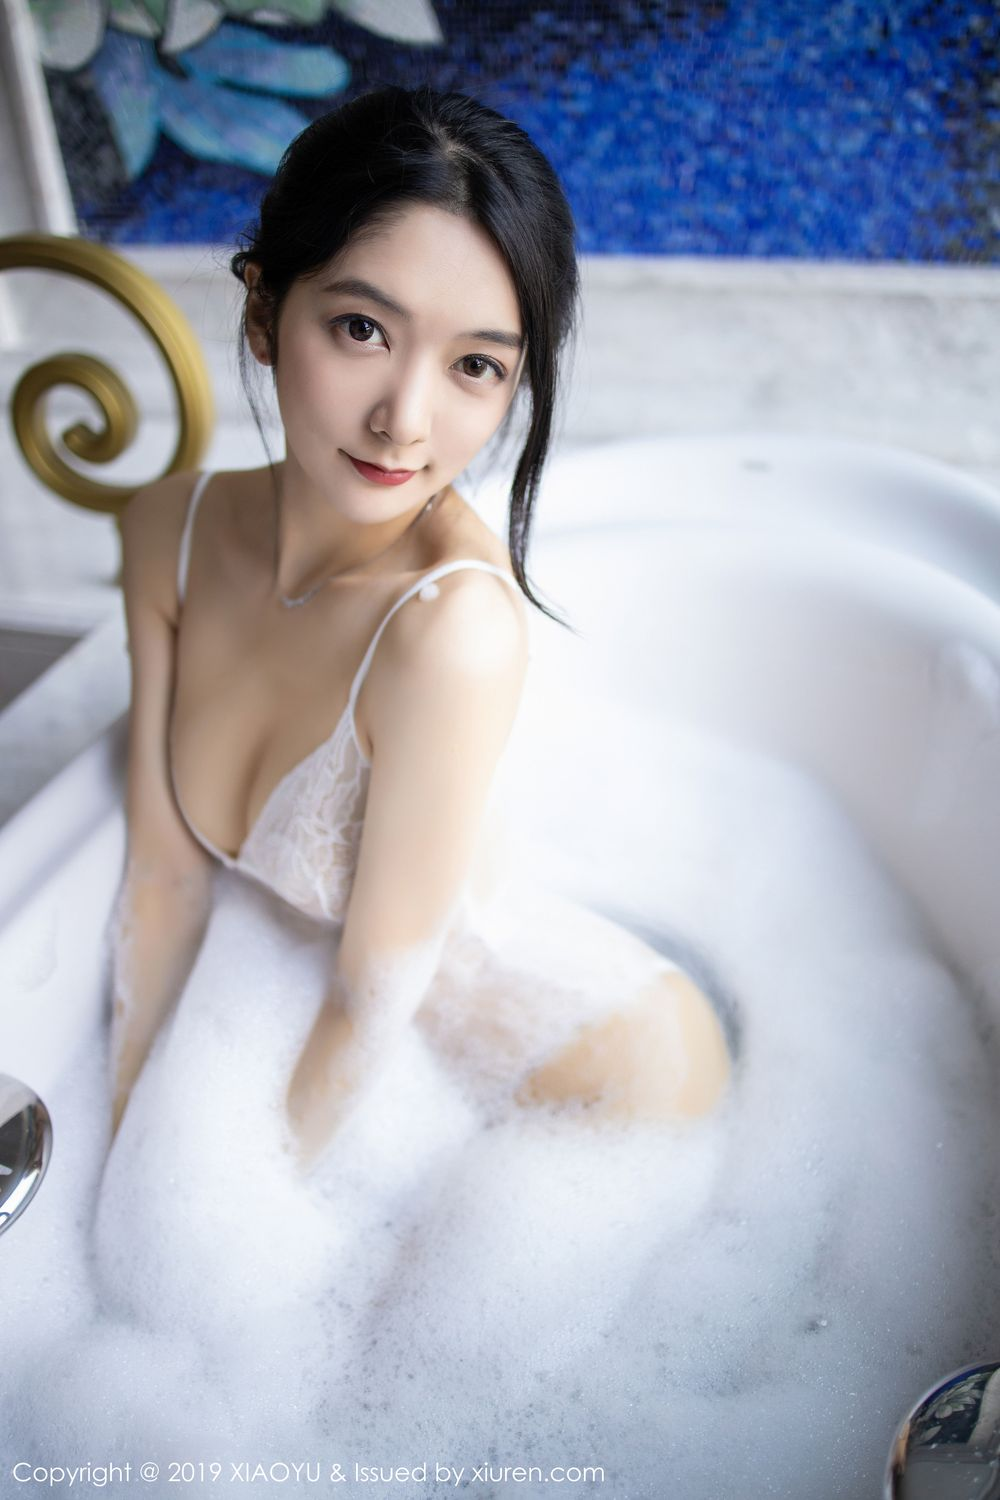 [XiaoYu] Vol.223 Xiao Re Ba 16P, Di Yi, Tall, Wet, XiaoYu